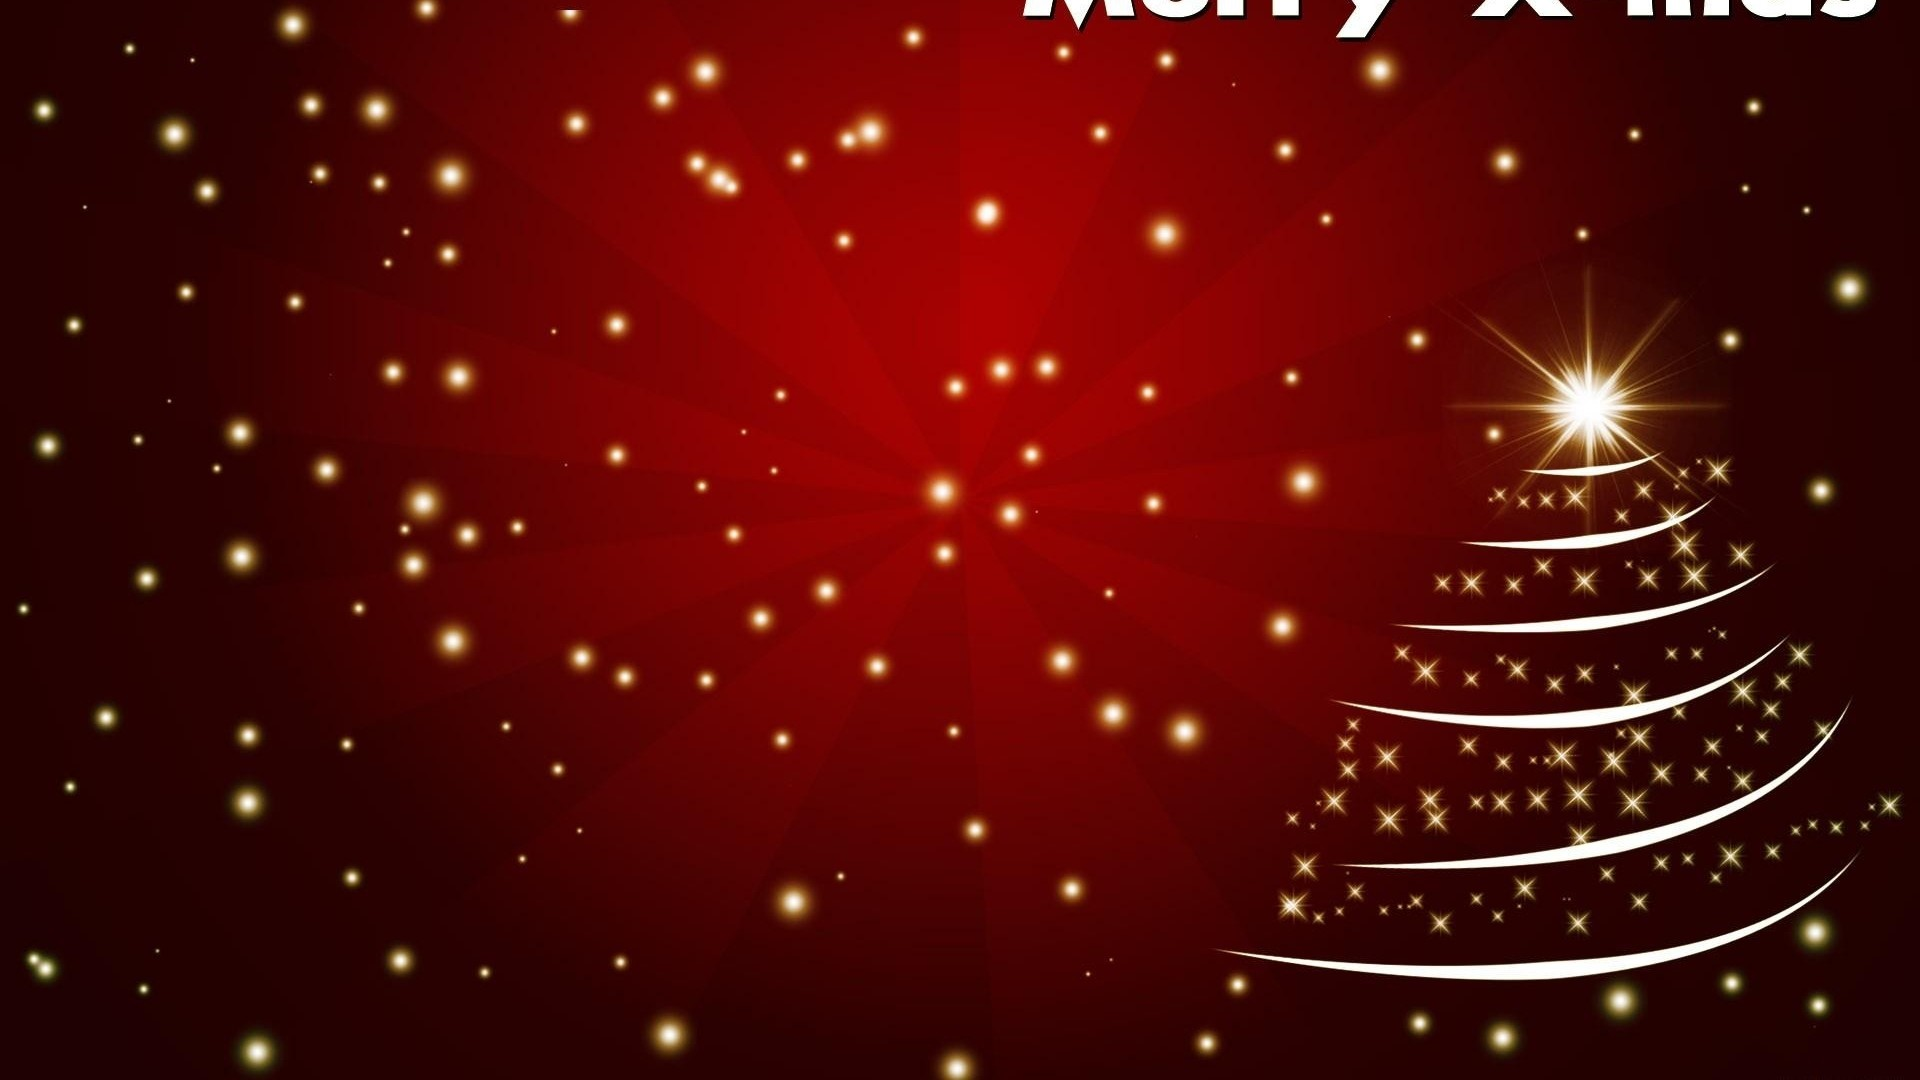 1920x1080  Wallpaper christmas tree, stars, backgrounds, lettering, wishes,  holiday, christmas